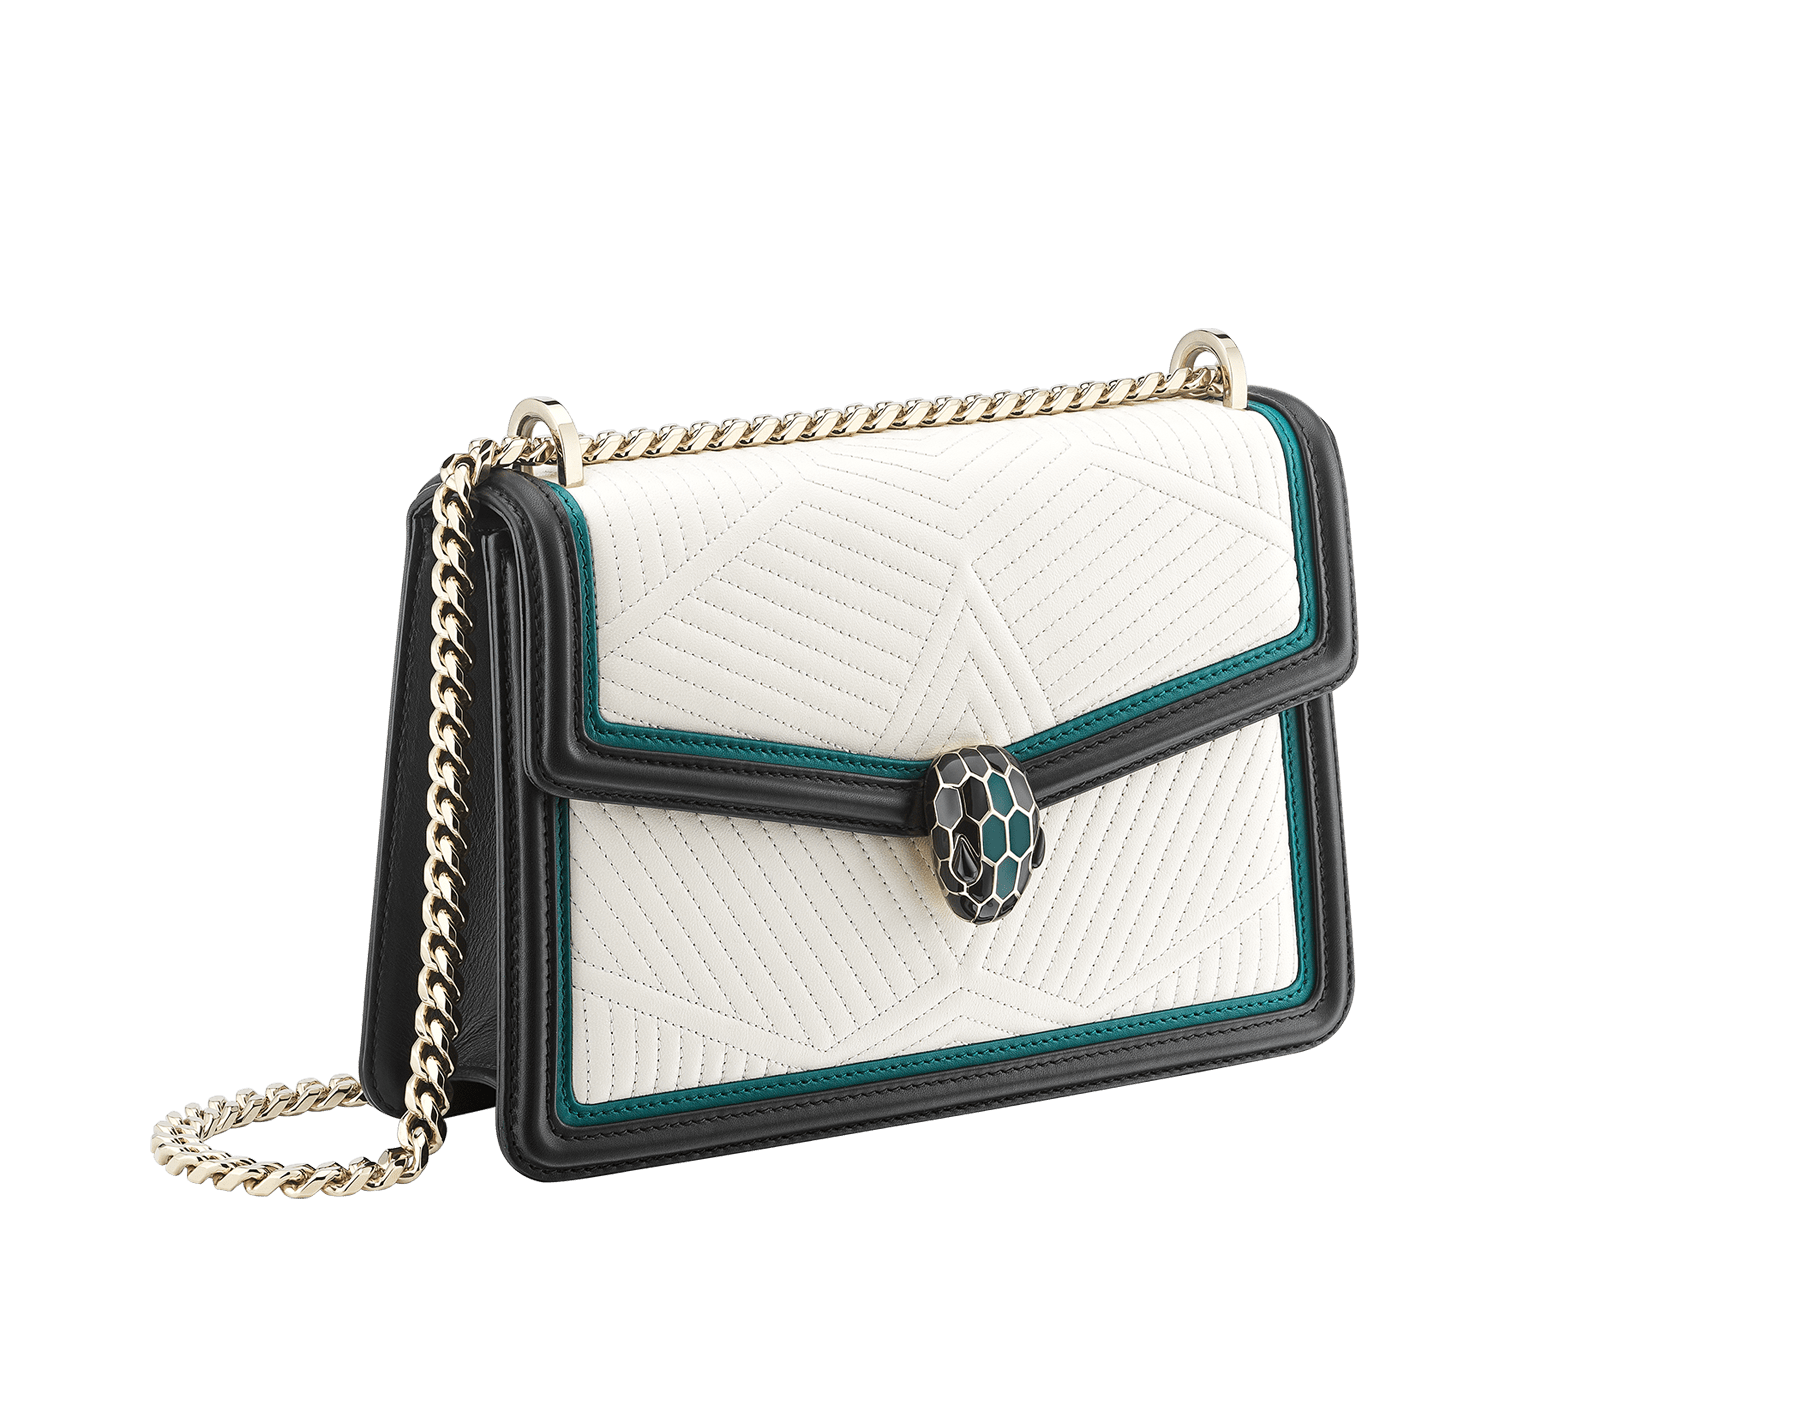 Serpenti Diamond Blast shoulder bag in white agate quilted nappa leather body and deep jade and black calf leather frames. Snakehead closure in light gold plated brass decorated with deep jade and black enamel, and black onyx eyes. 287970 image 2